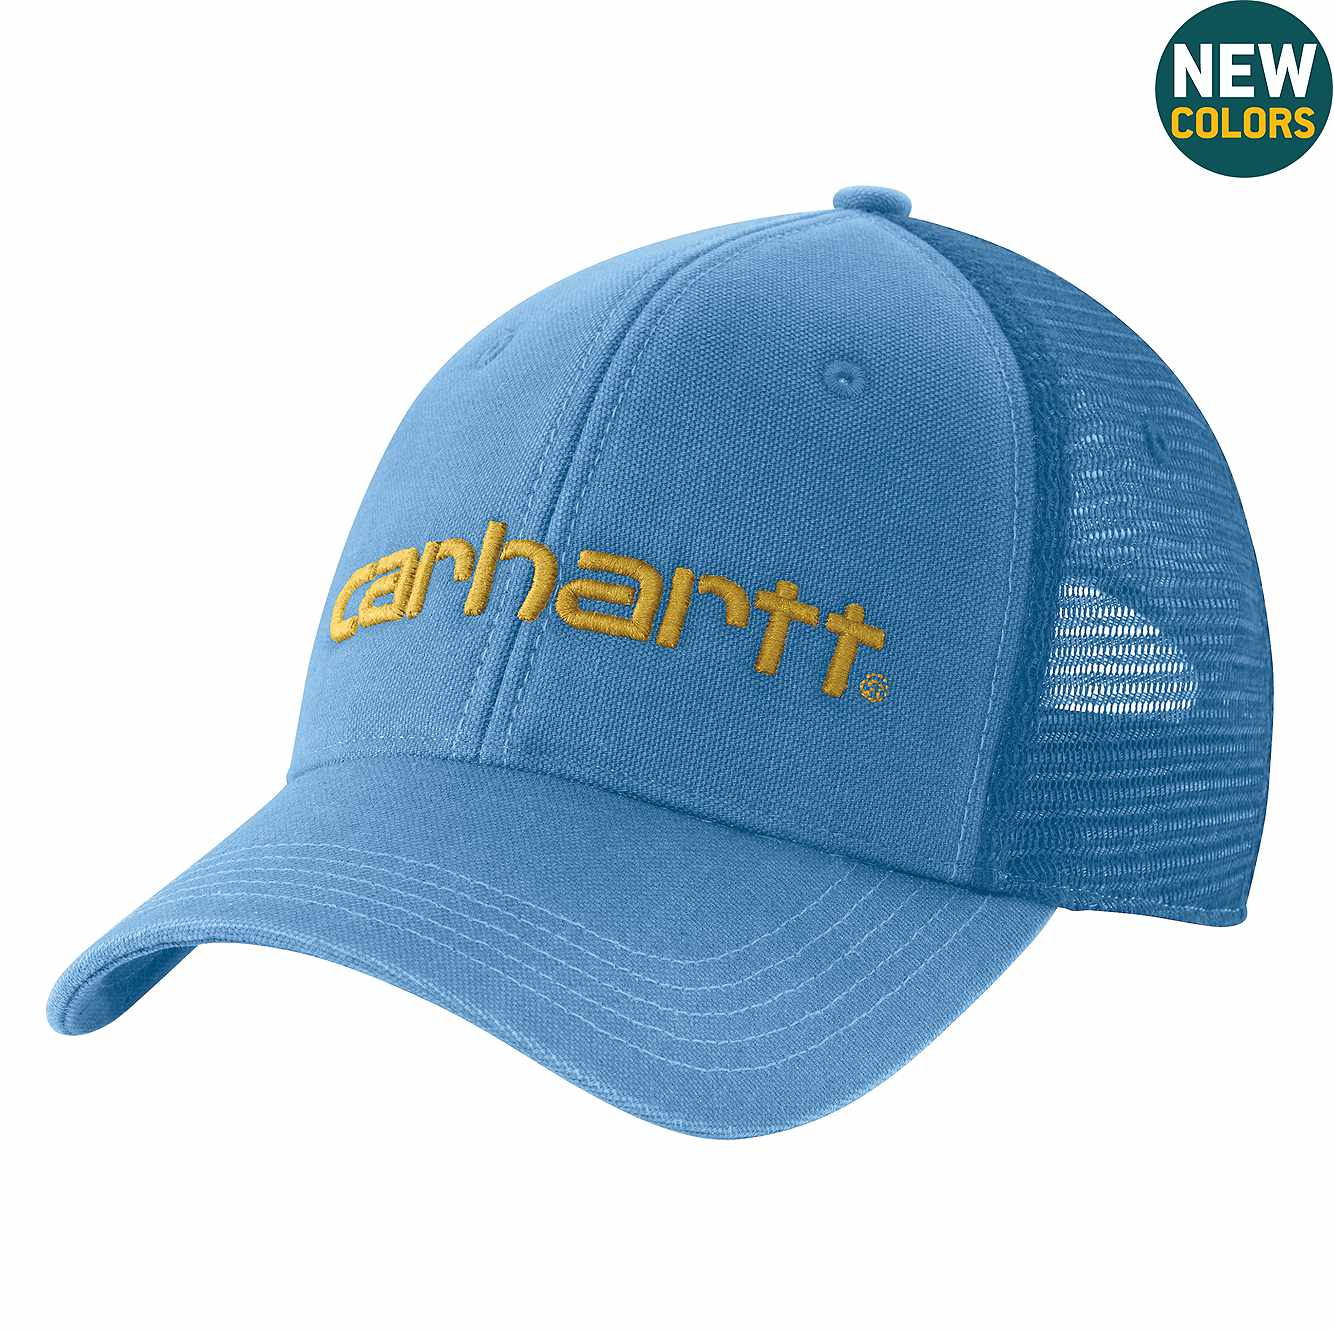 Picture of Dunmore Cap in French Blue